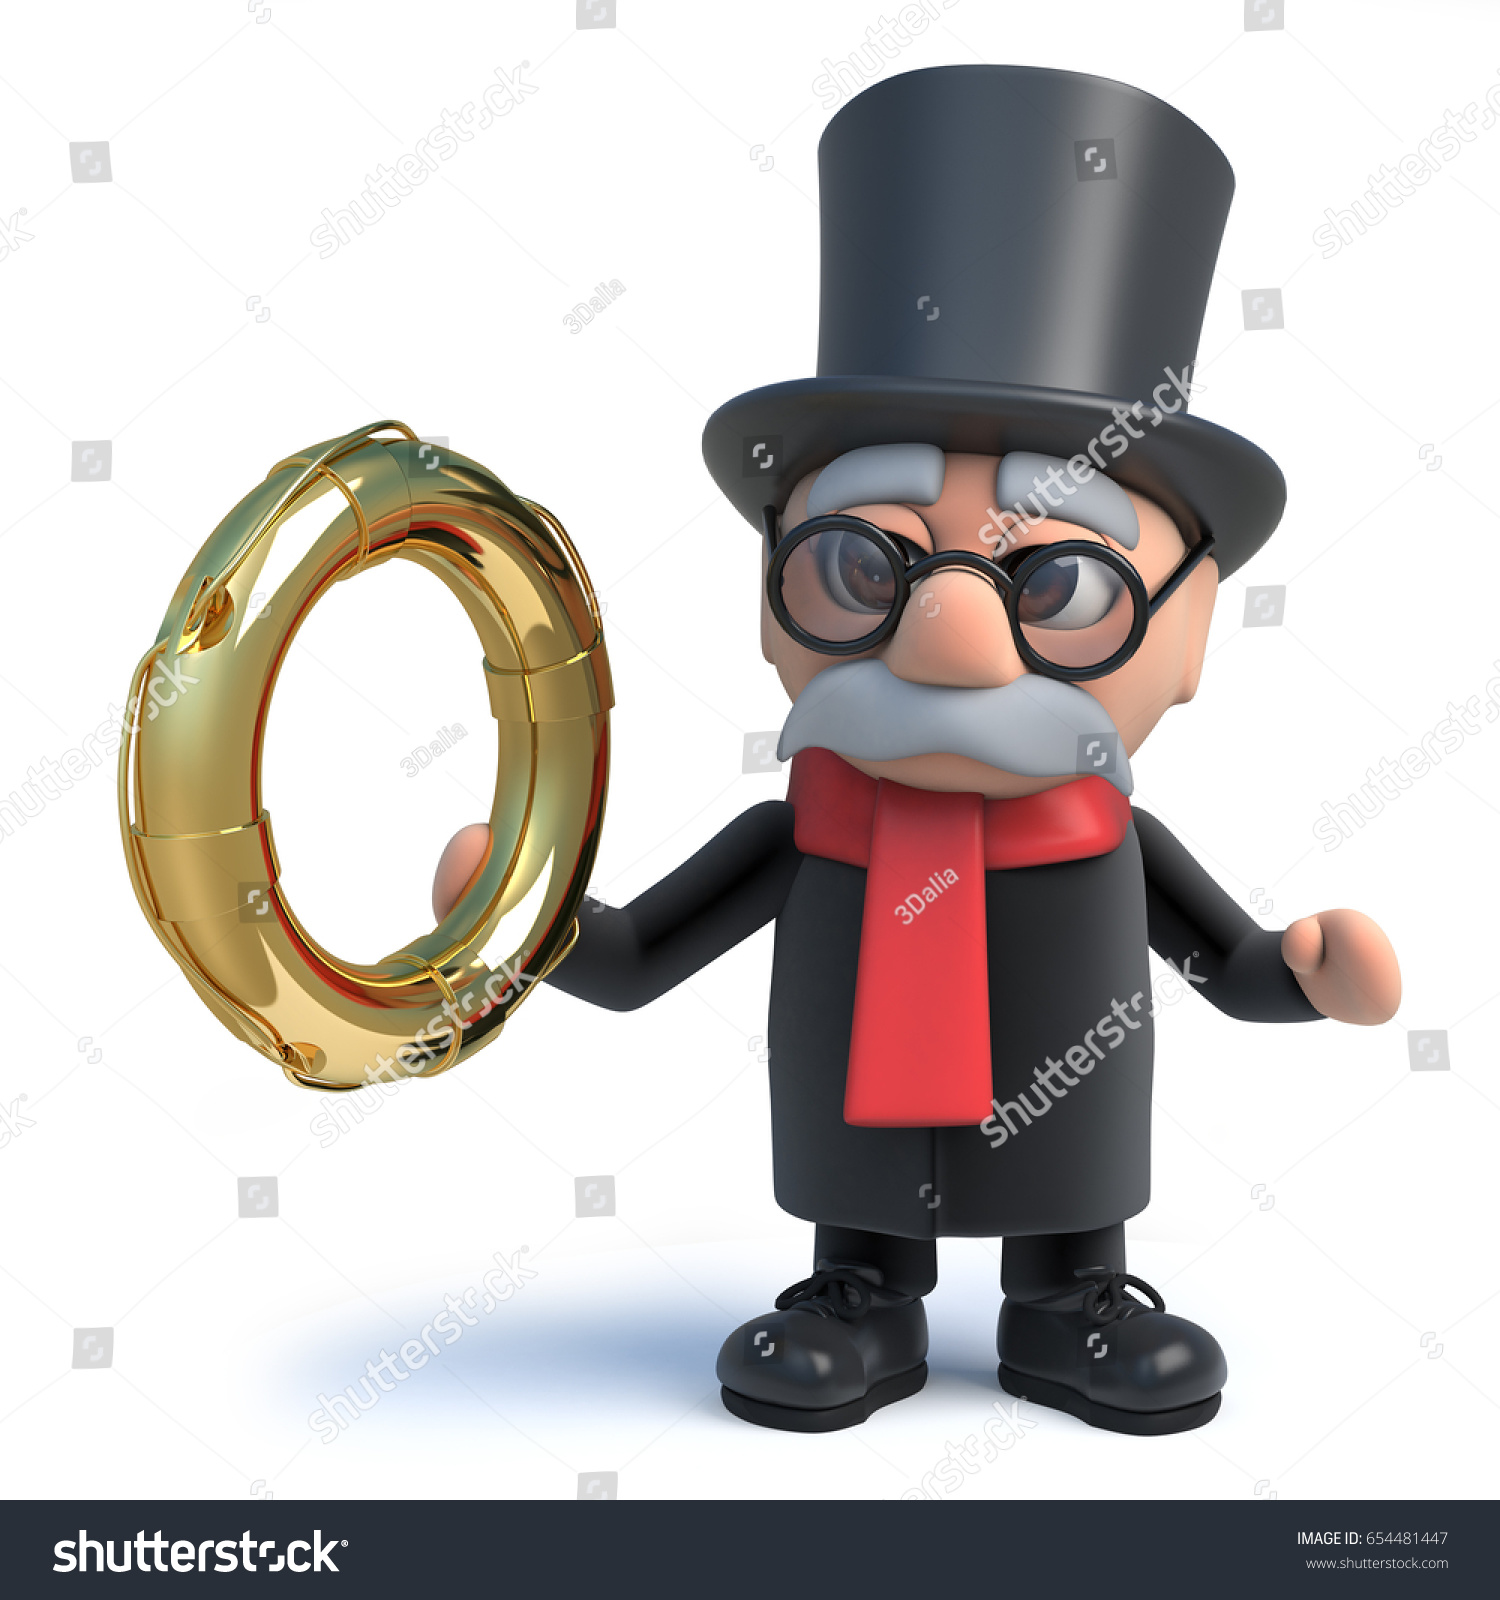 With golden key 3d rendering plan concept with golden key 3d rendering - 3d Render Of A Funny Cartoon Lord Character Wearing A Top Hat And Holding A Gold